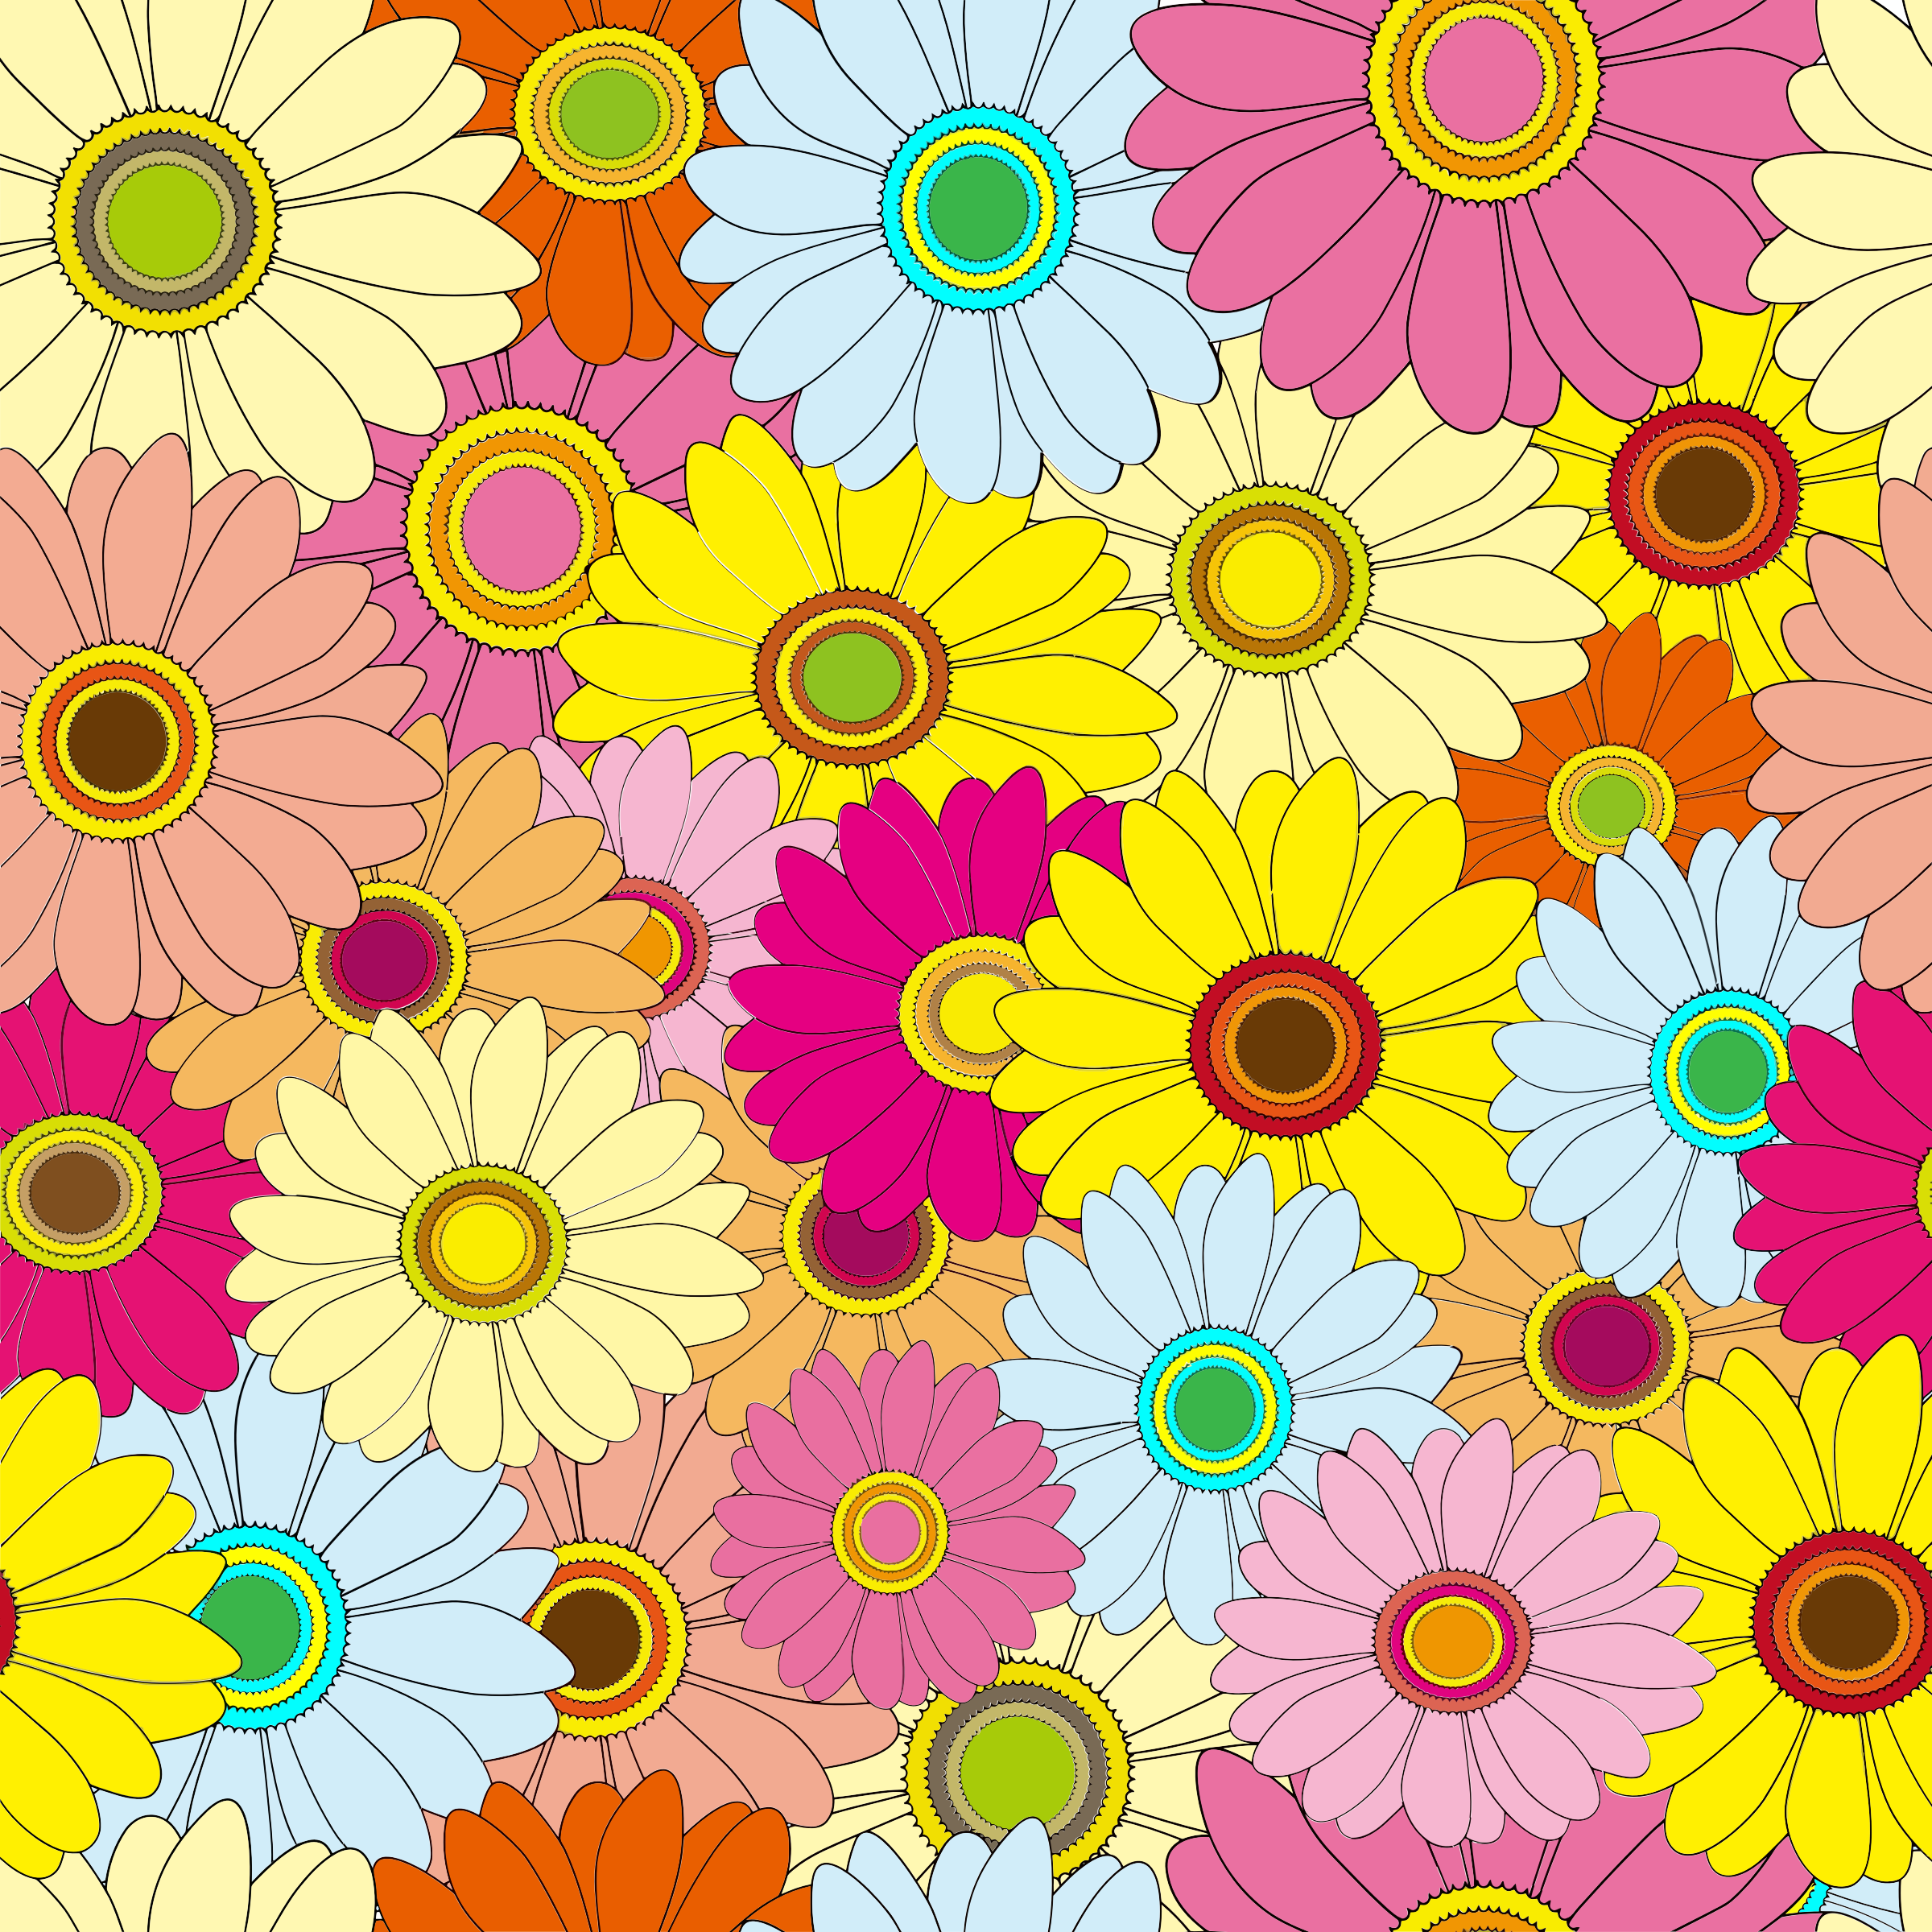 Flower clipart backgrounds clipart black and white stock Clipart - Bright Multicolored Floral Background clipart black and white stock